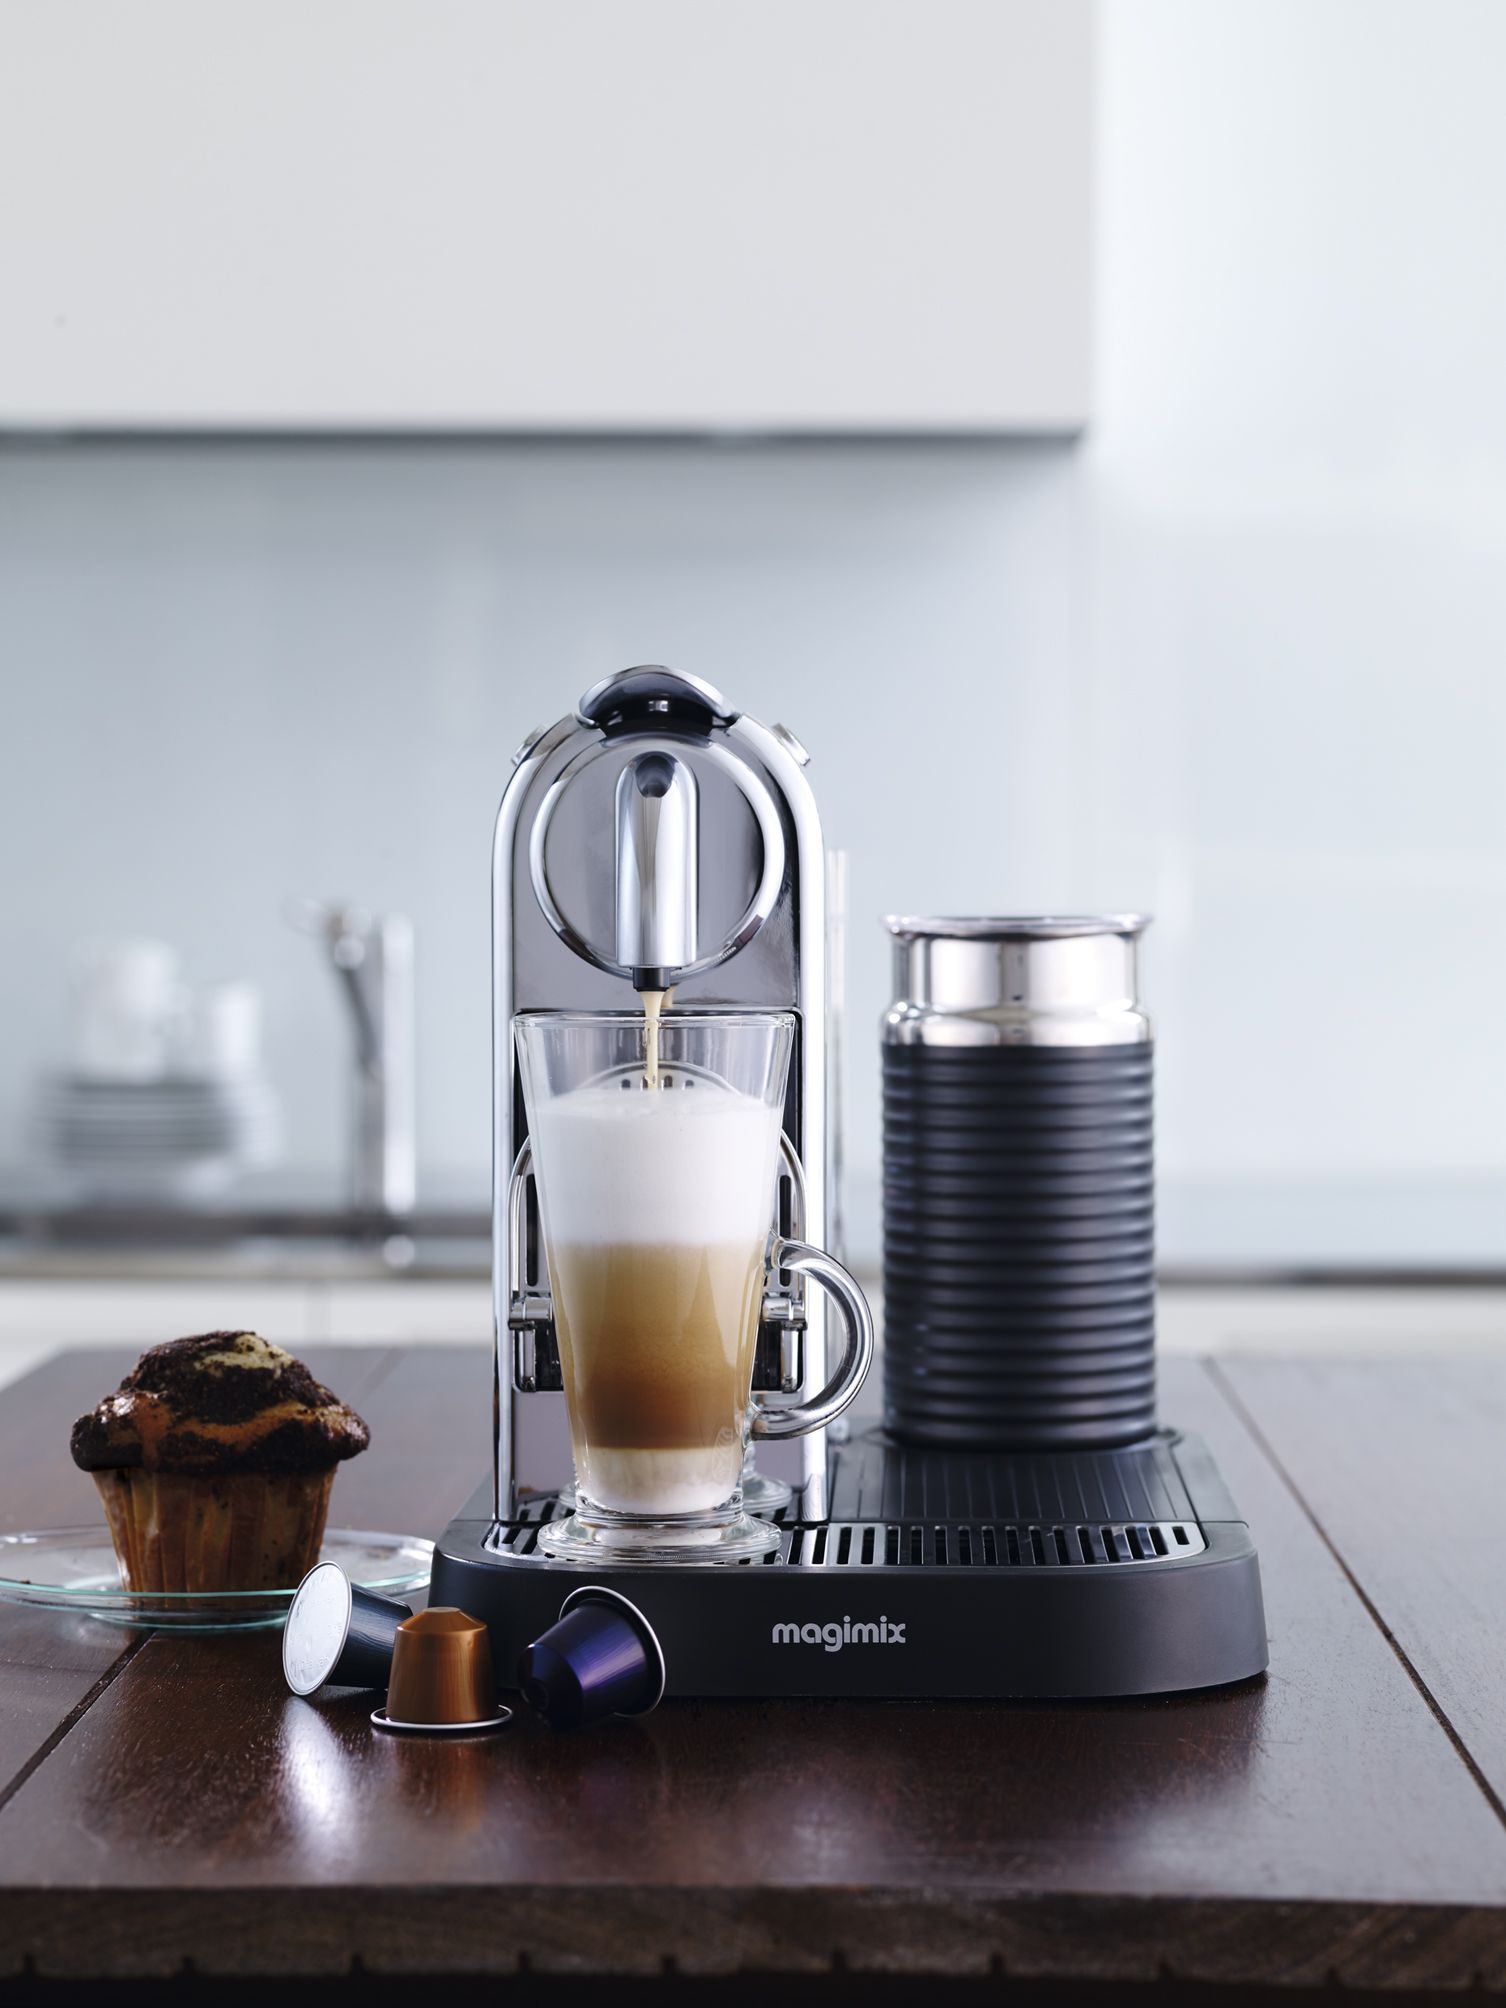 Uncategorized Debenhams Kitchen Appliances exclusive to debenhams this citiz and milk coffee machine from nespresso is easy use